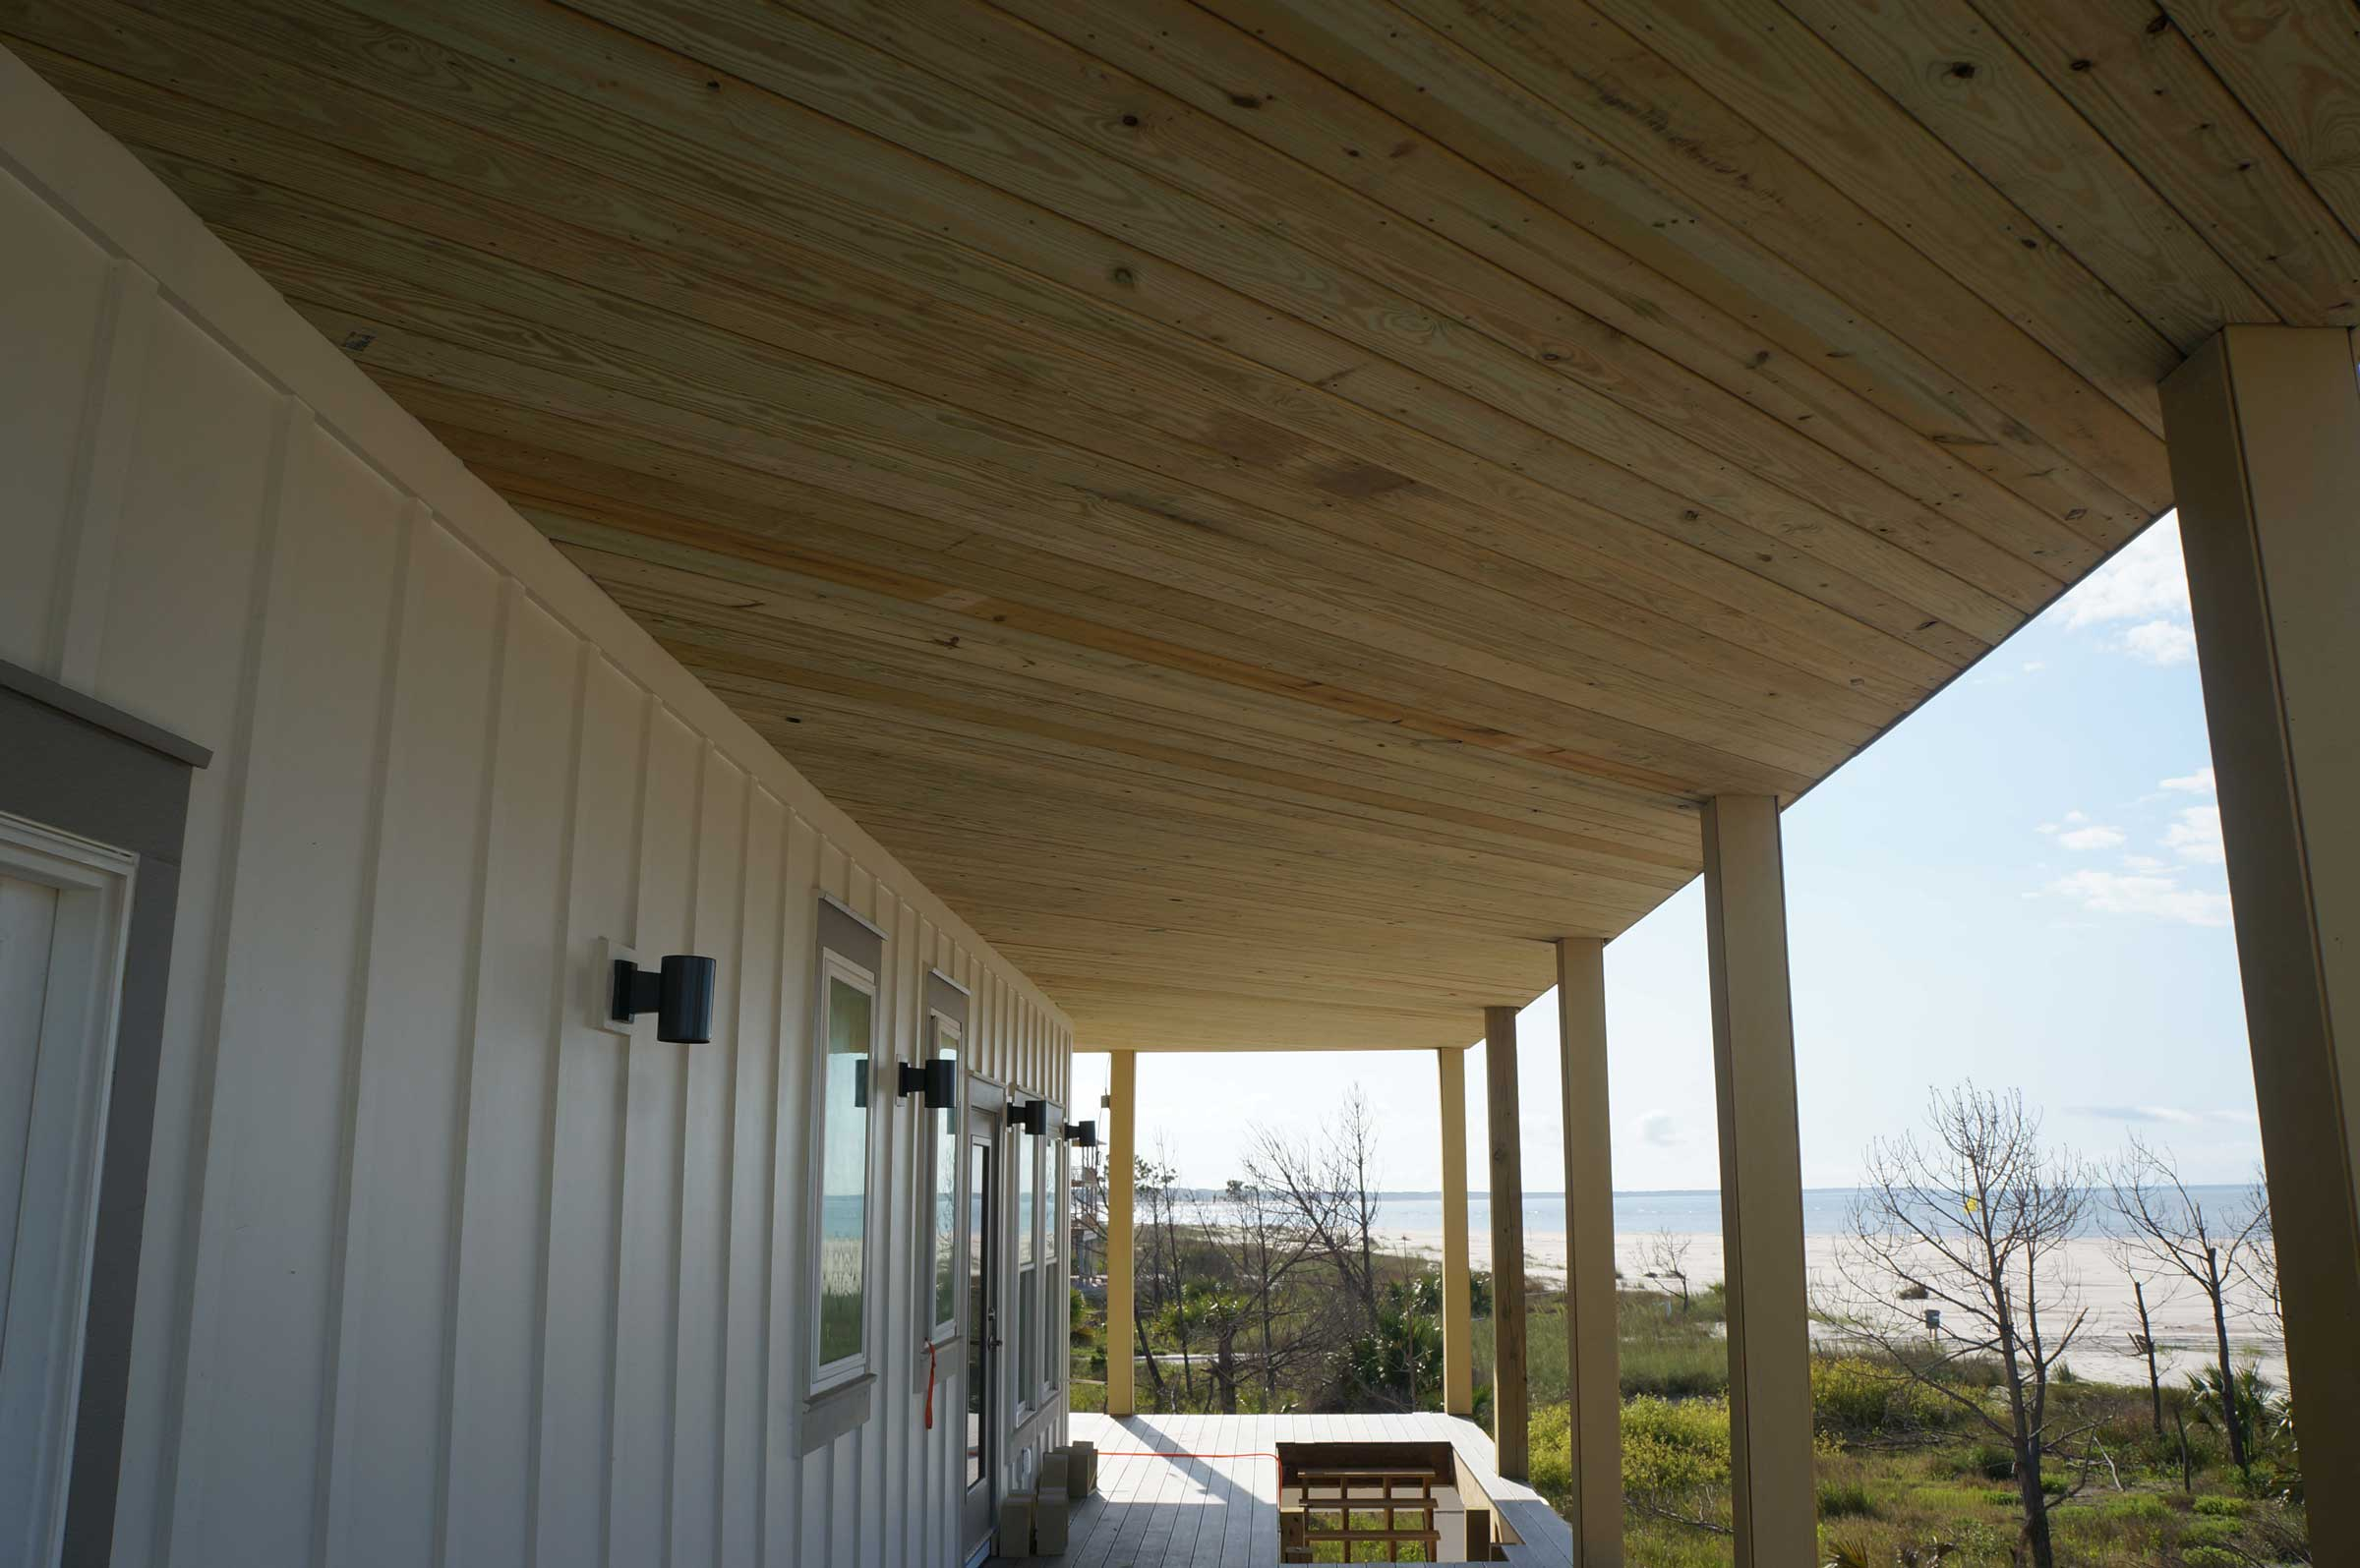 Wood plank covering over second floor deck.